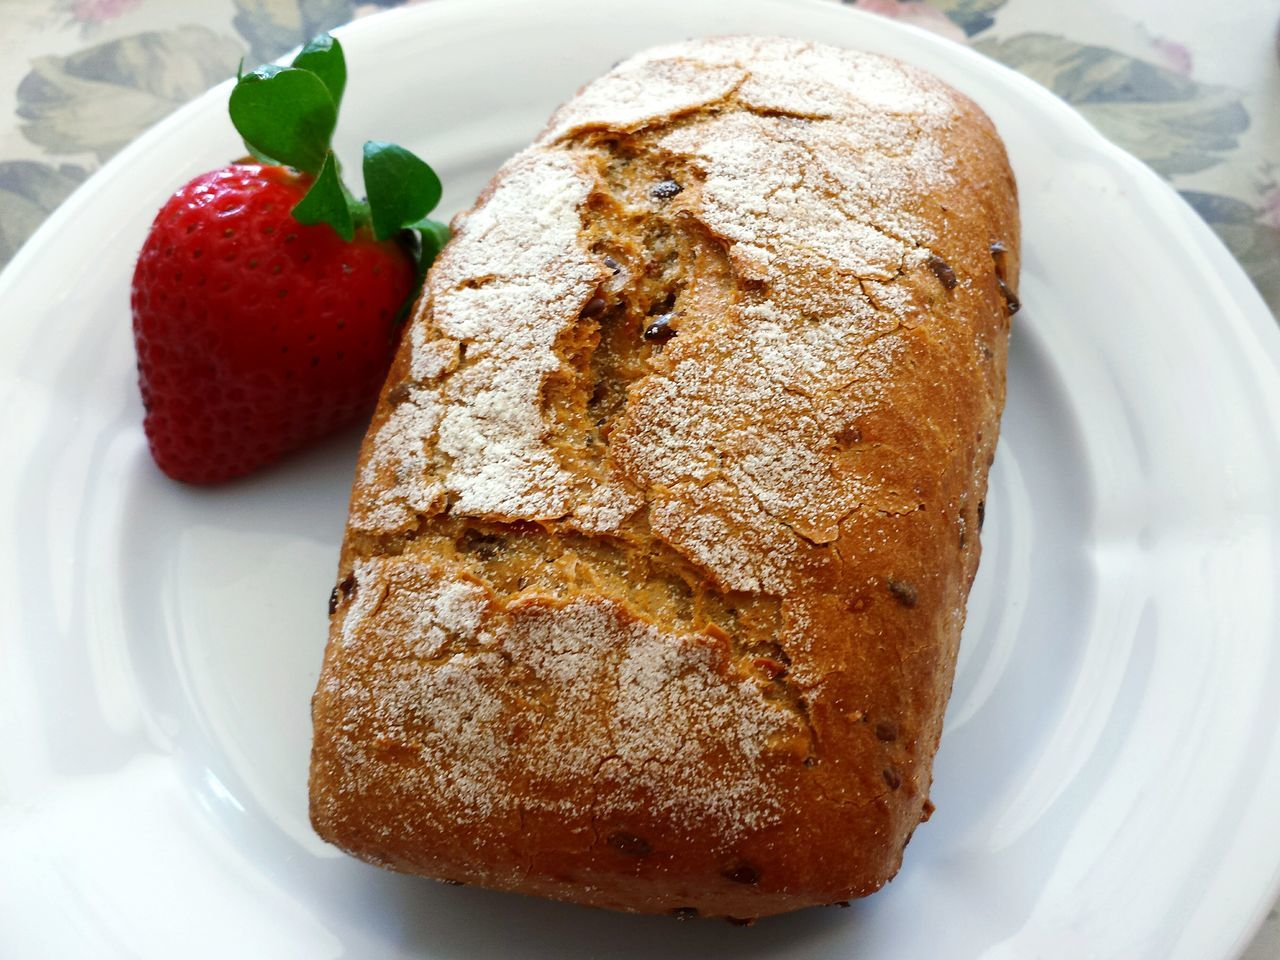 Morning Glory Breakfast Time Bread Roll Strawberry Strawberry Love Yummy Mouthwatering German Bread On A Plate Appetising Food Food Photography Bakeries Fresh Bread Popular Photos Appetitlich Close-up Ladyphotographerofthemonth Showcase: April Breadroll Bread Rolls Food Backware Brötchen The Essence Of Summer